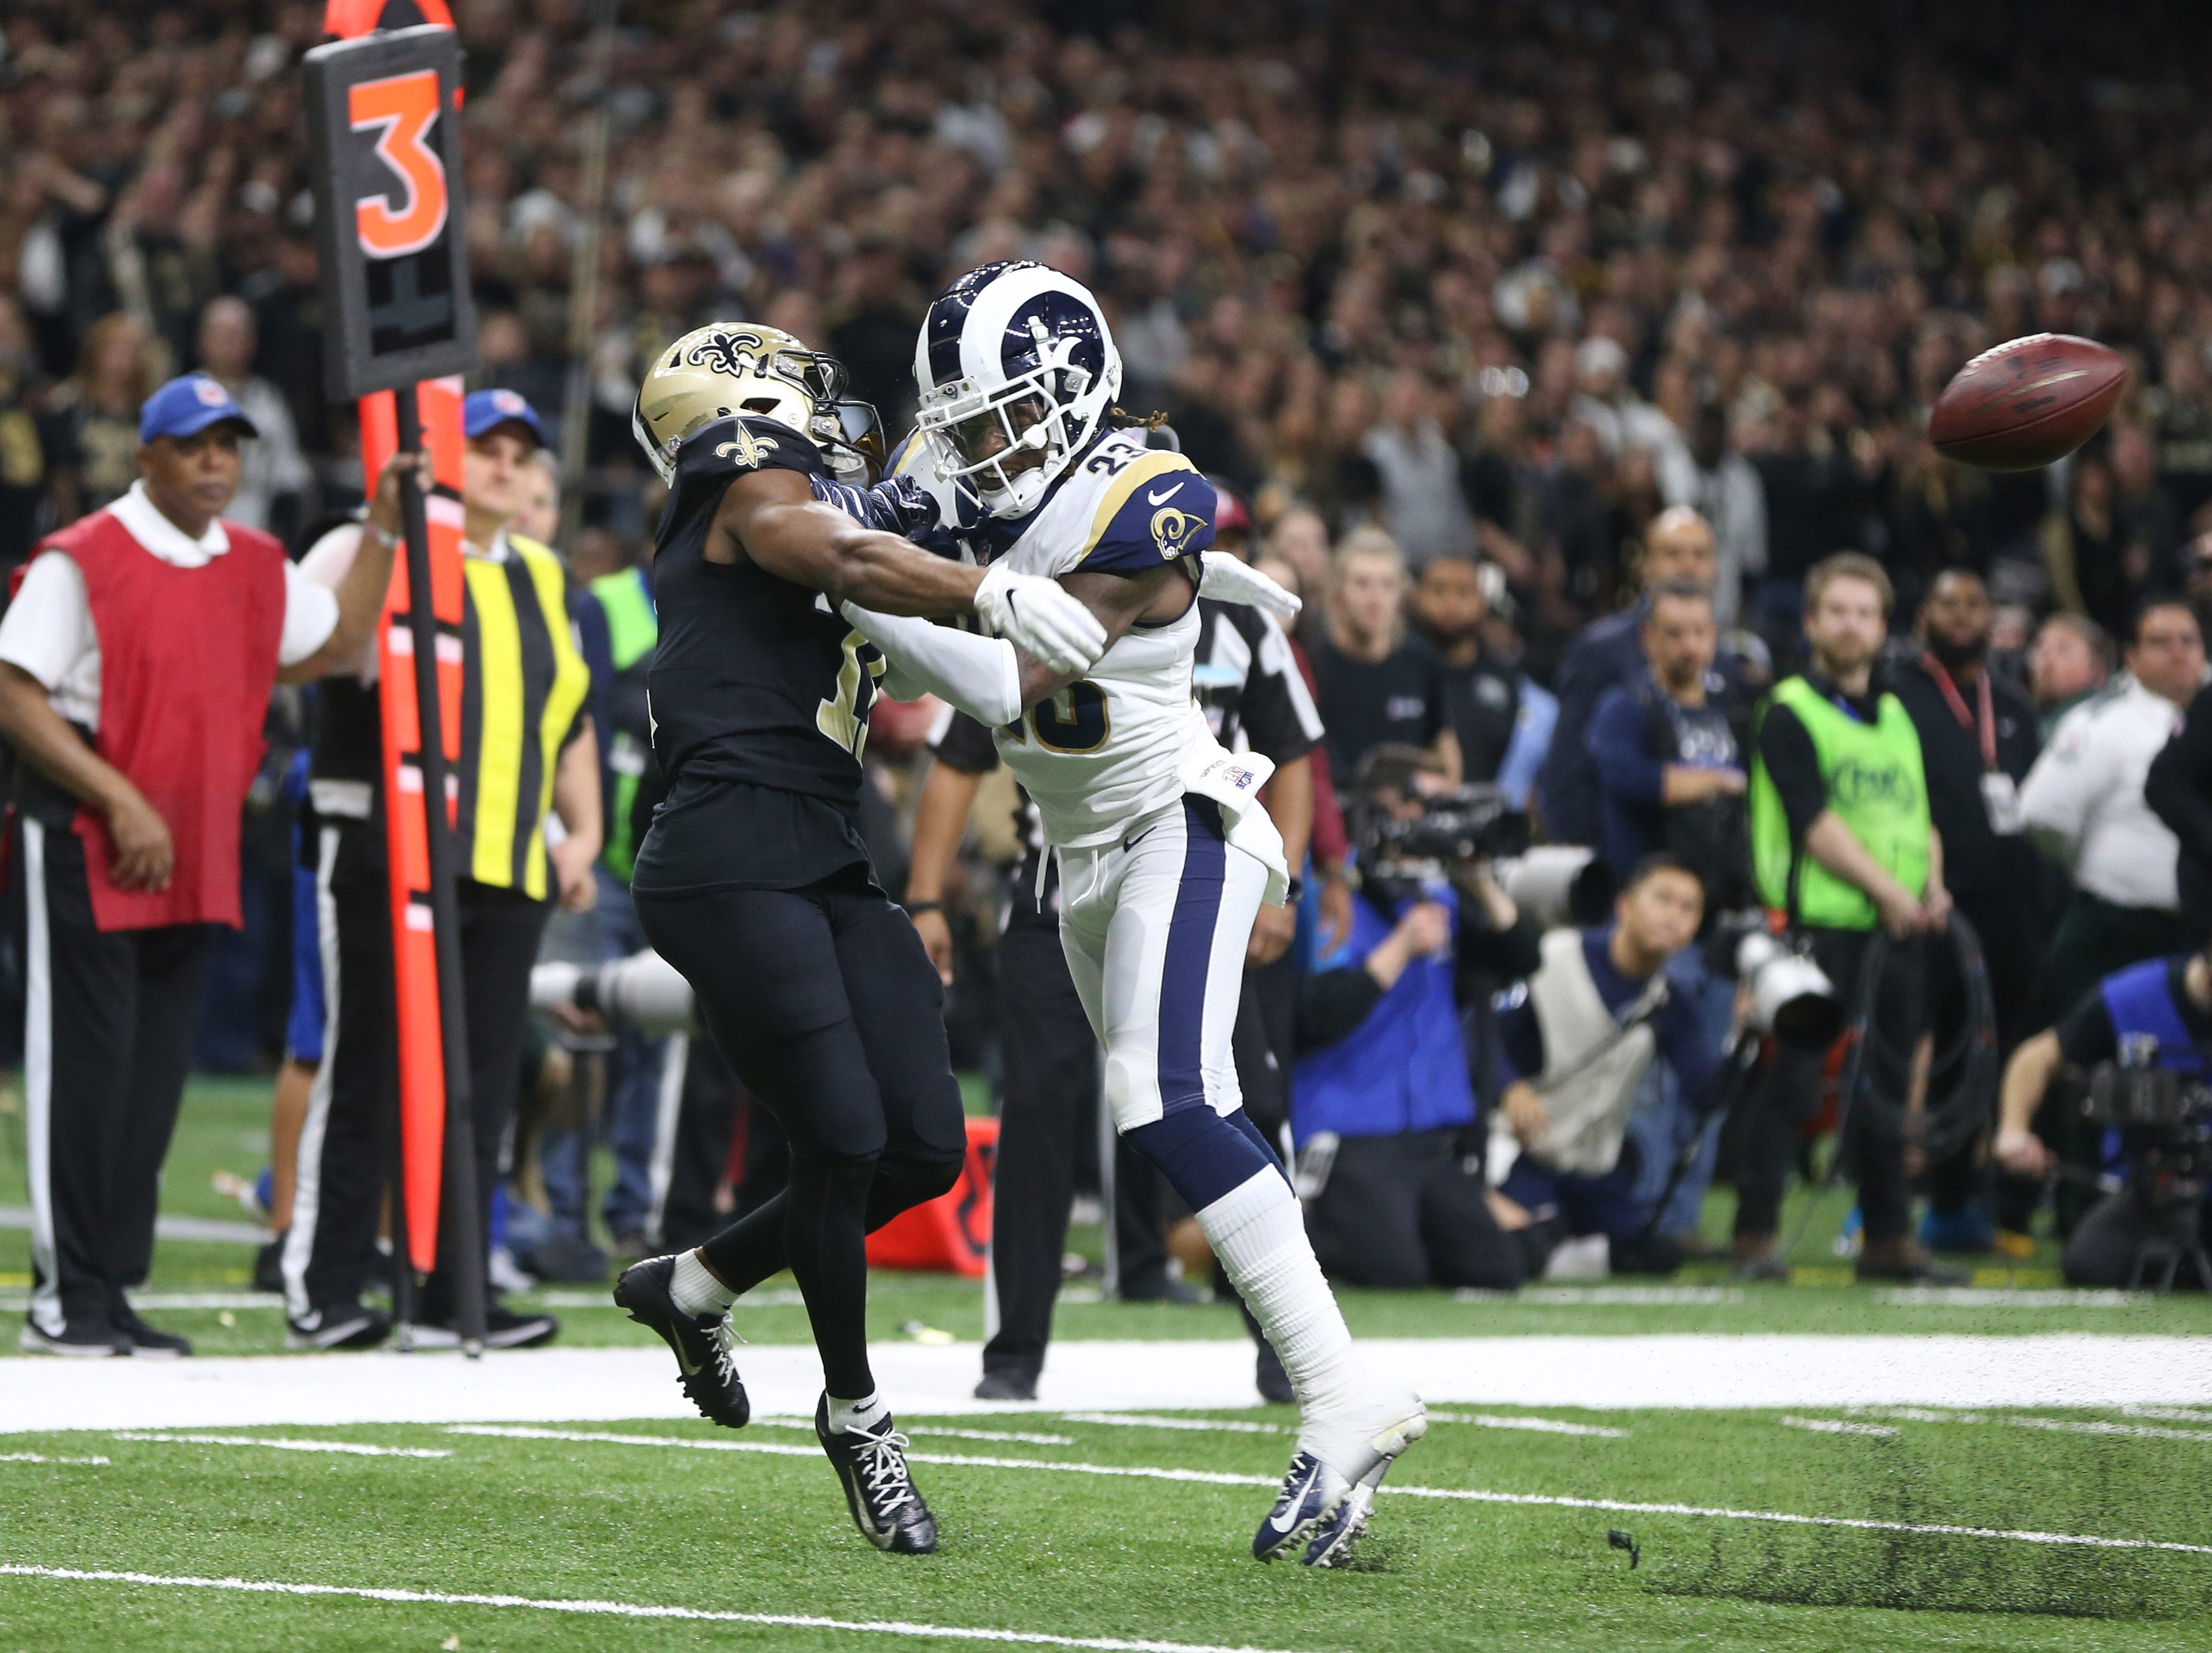 Los Angeles Rams defensive back Nickell Robey-Coleman (23) breaks up a pass intended or New Orleans Saints wide receiver Tommylee Lewis (11) during the fourth quarter.